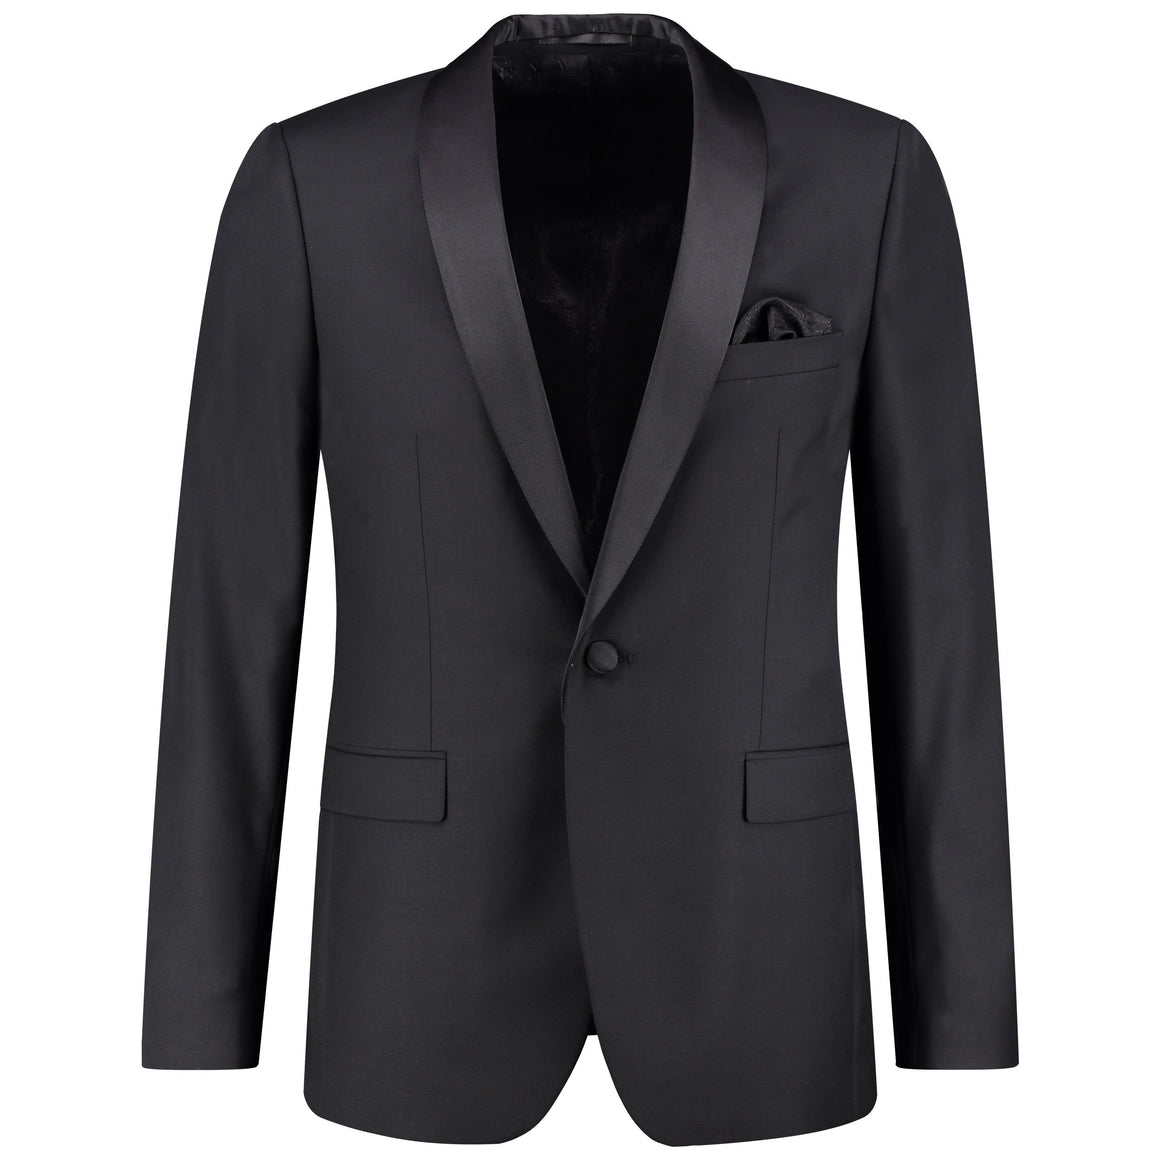 Front perspective of classic fit one button solid tuxedo for men